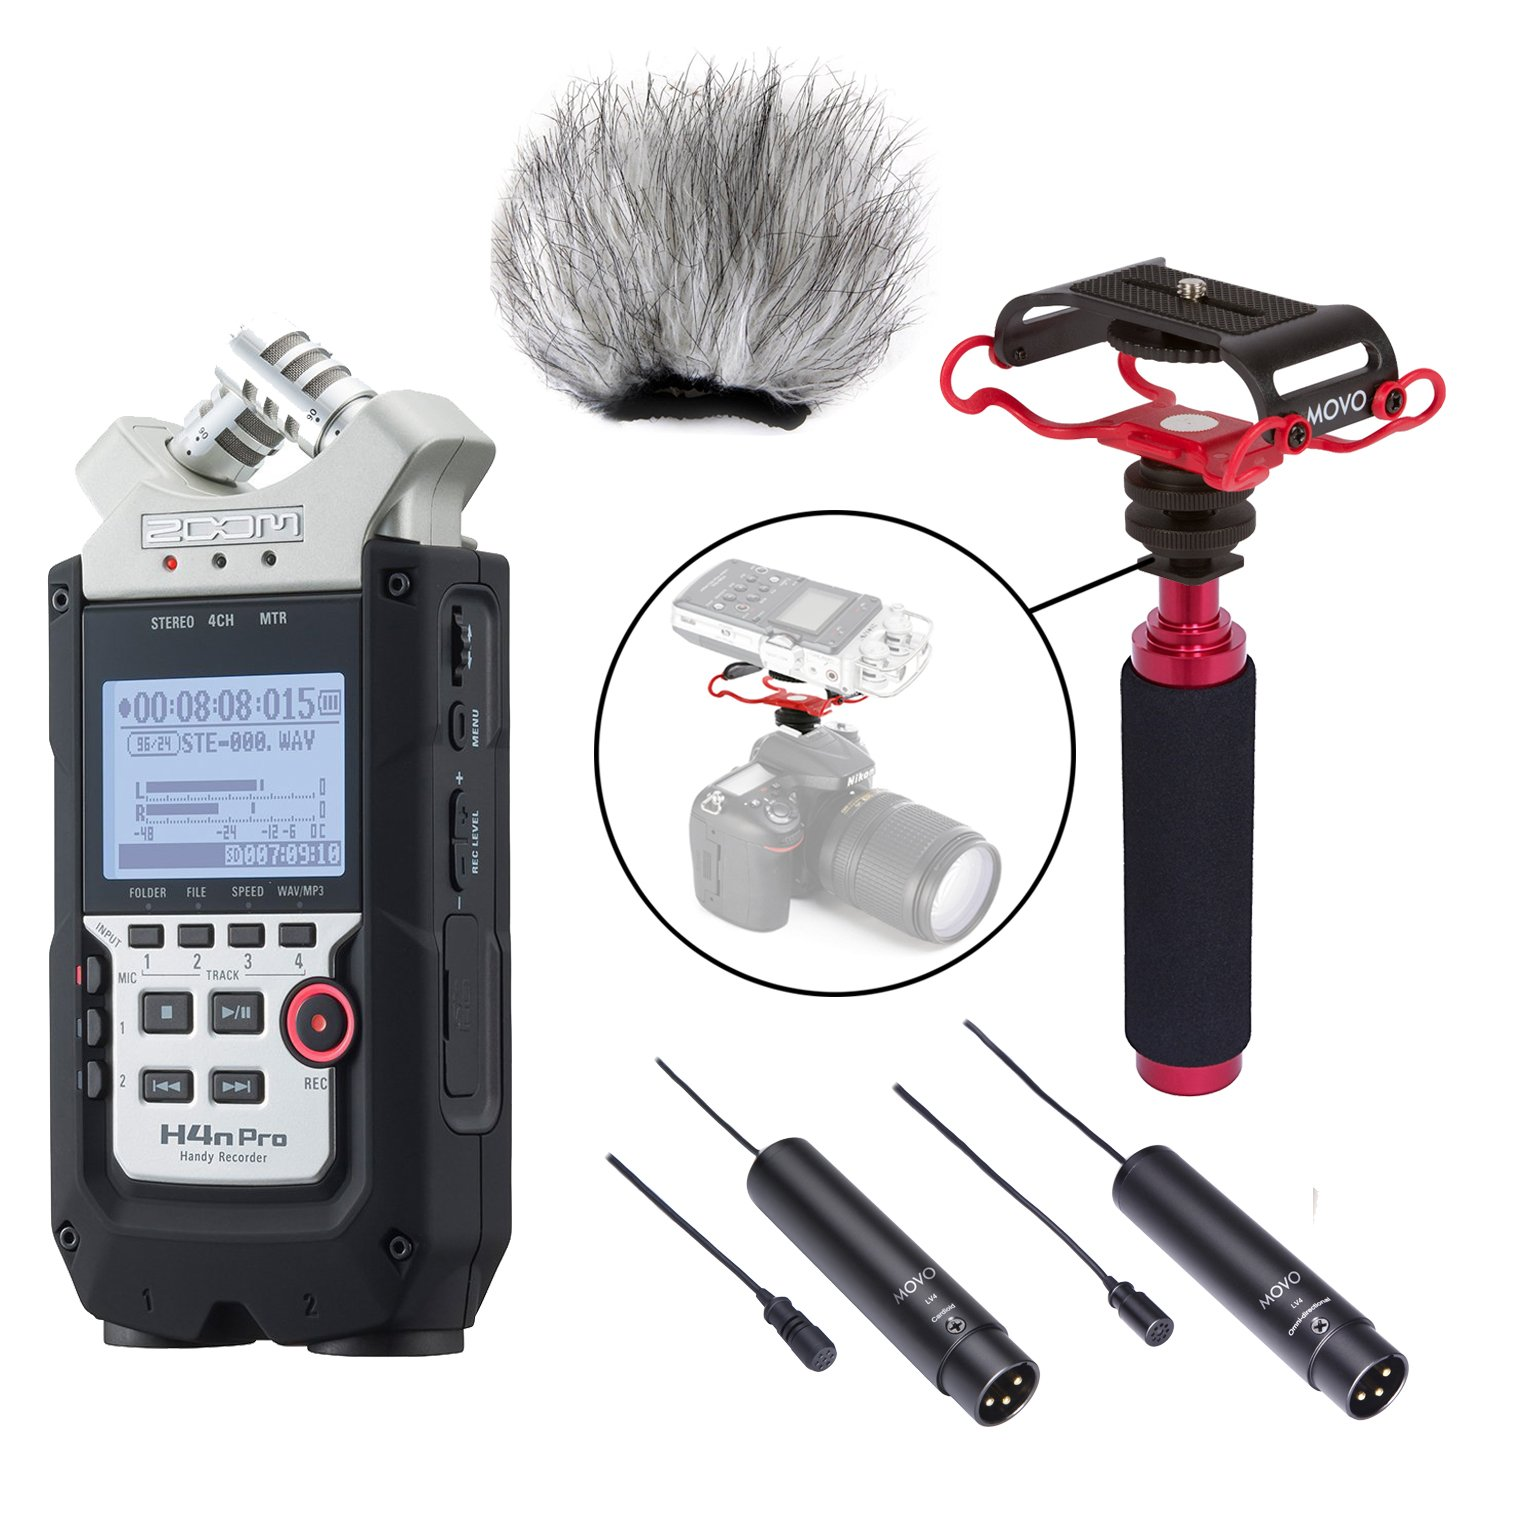 Zoom H4n PRO 4-Channel Handy Recorder LOADED Bundle with Omnidirectional and Cardioid XLR Lavalier Microphones, Deadcat Windscreen, Shockmount, Camera Mount and Mic Grip